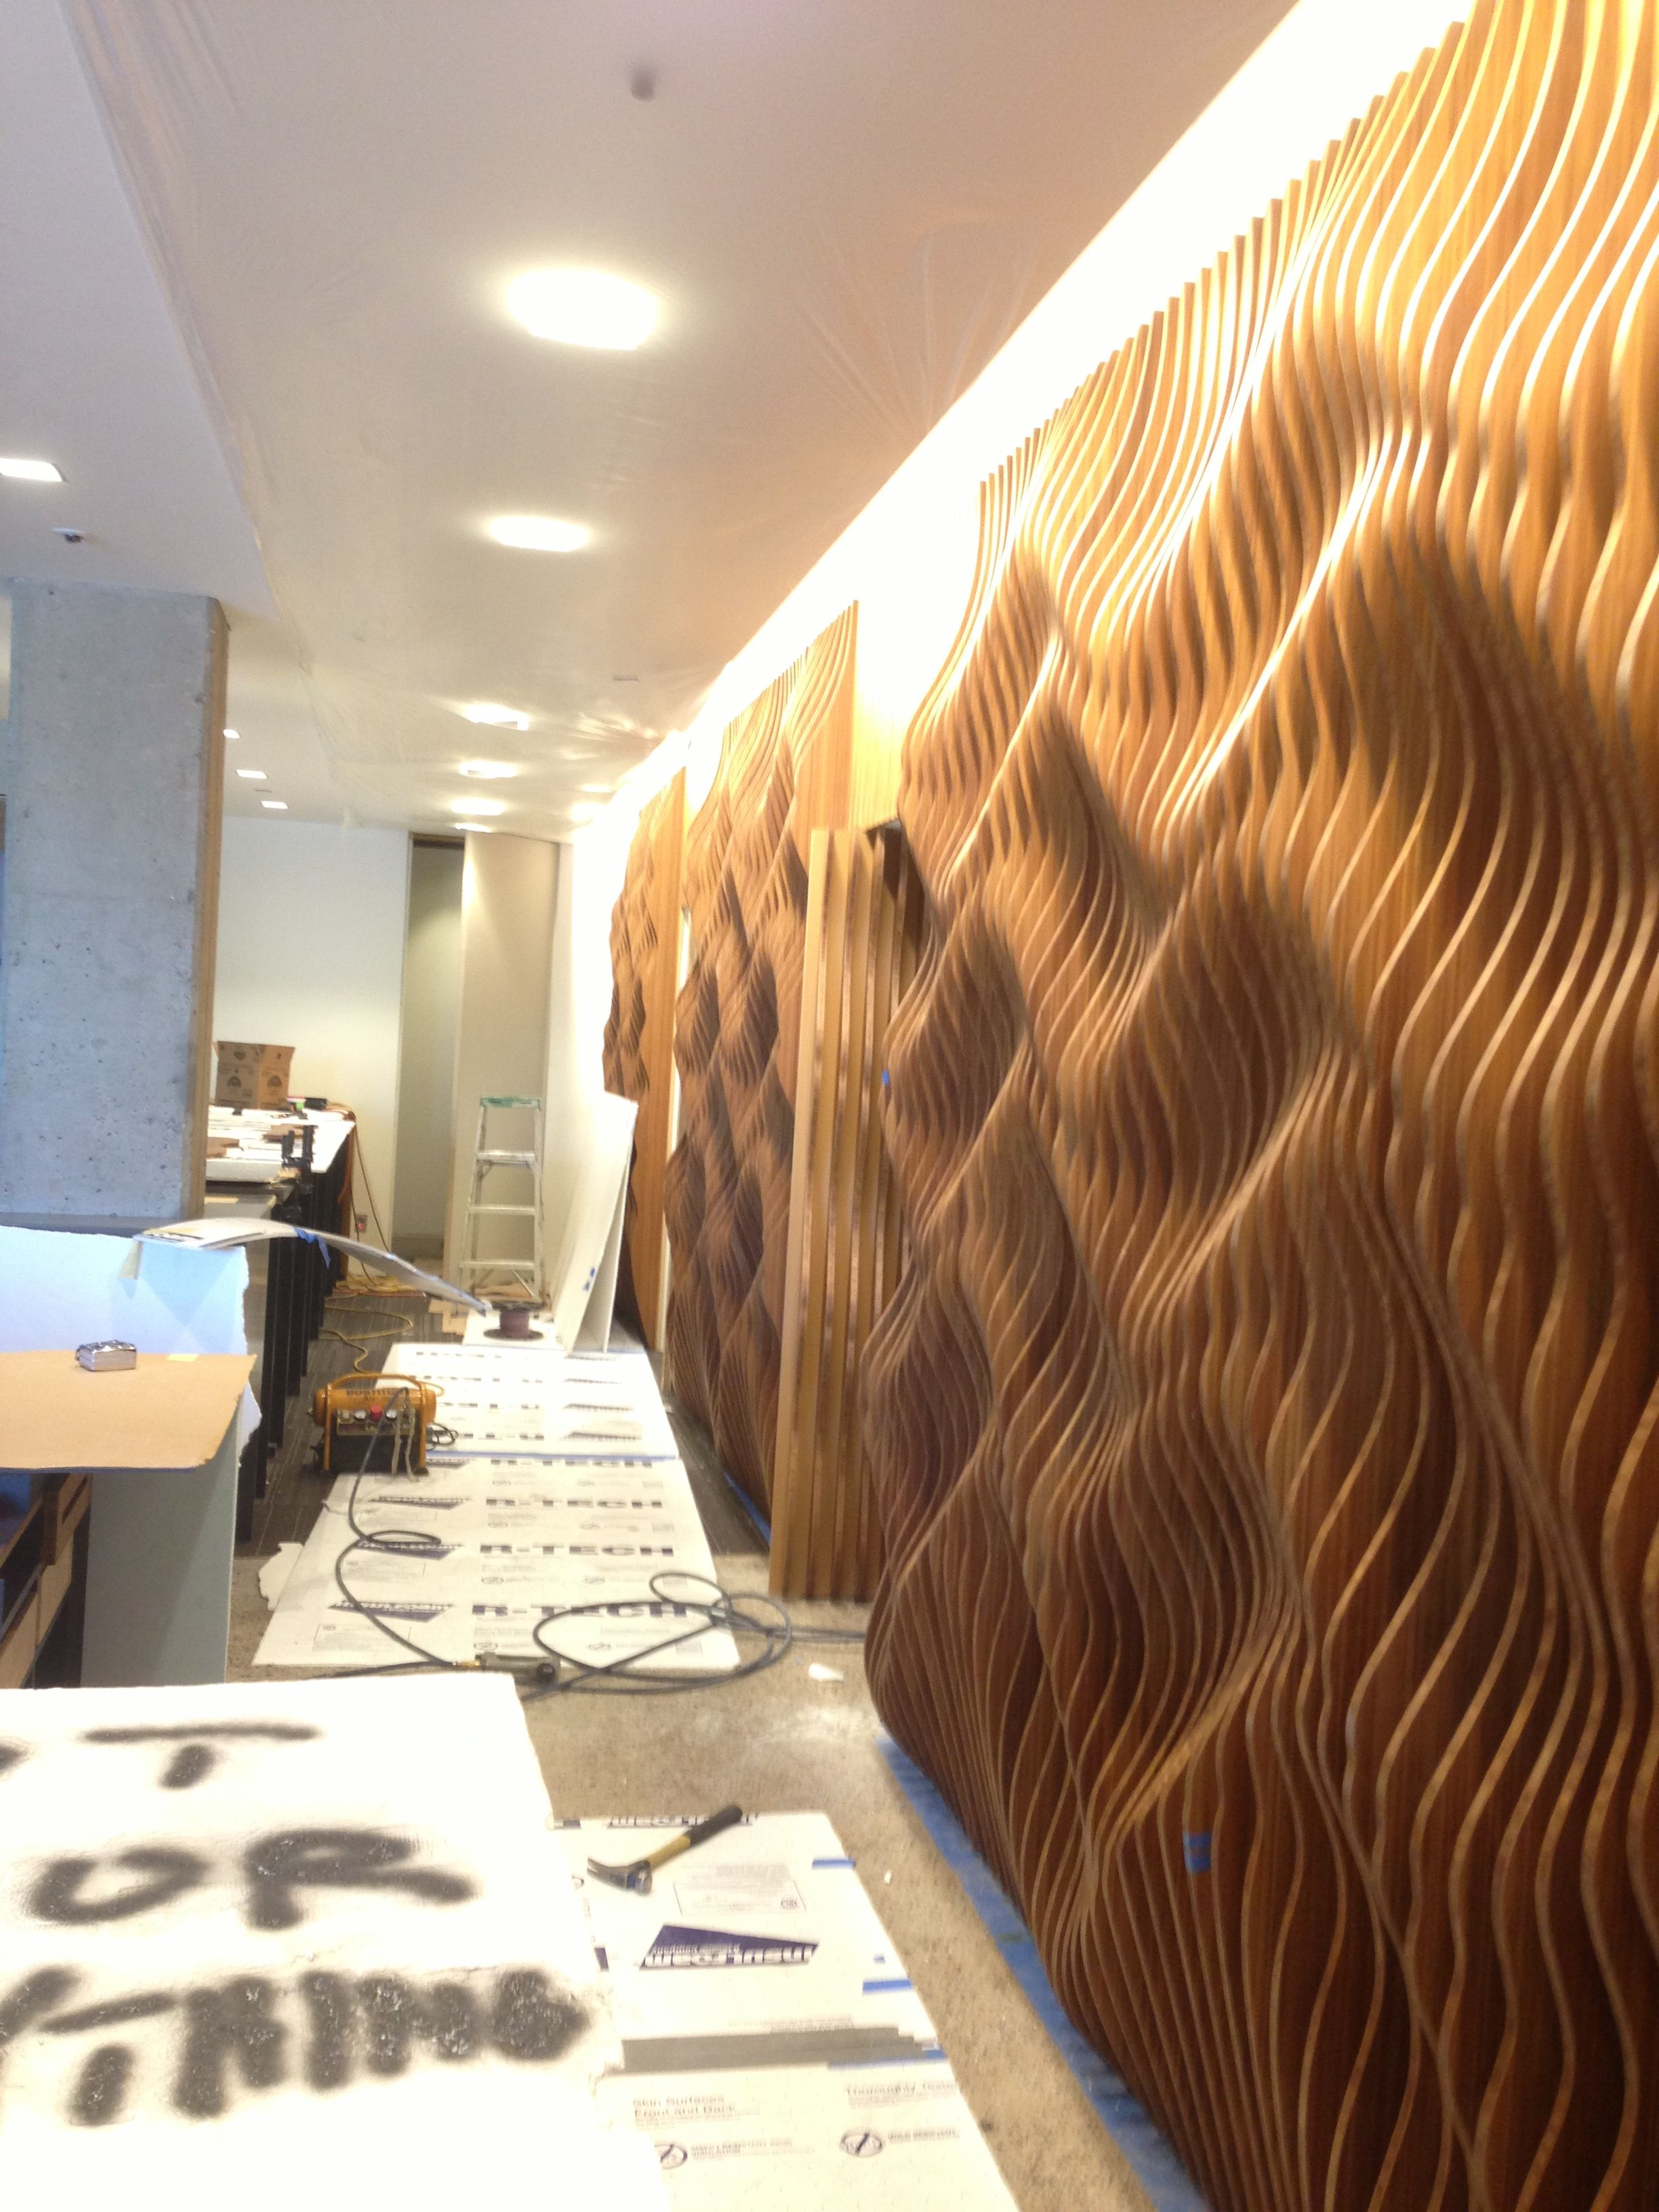 Cnc cut ply boo wood feature wall complete 180degreesinc for Wood walls decorating ideas